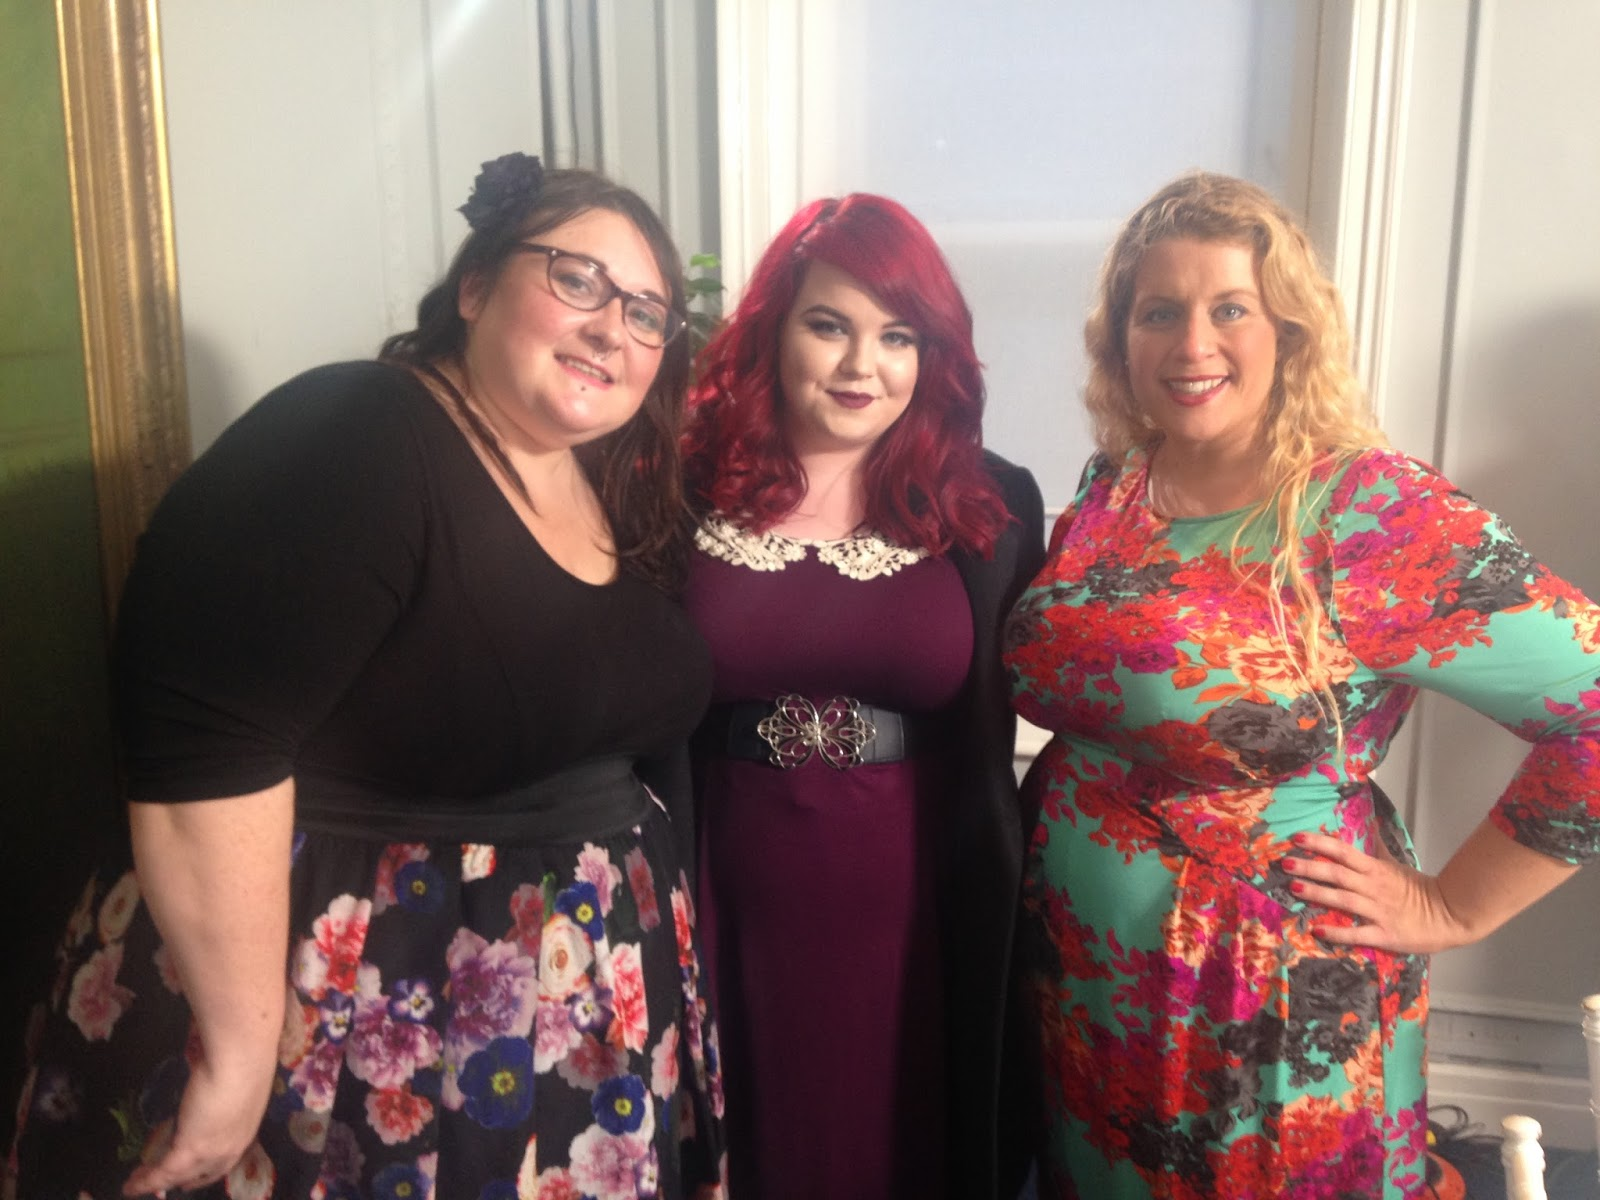 Plus size bloggers, TK Maxx focus group, justmeleah, curvywordy, shemightbeloved